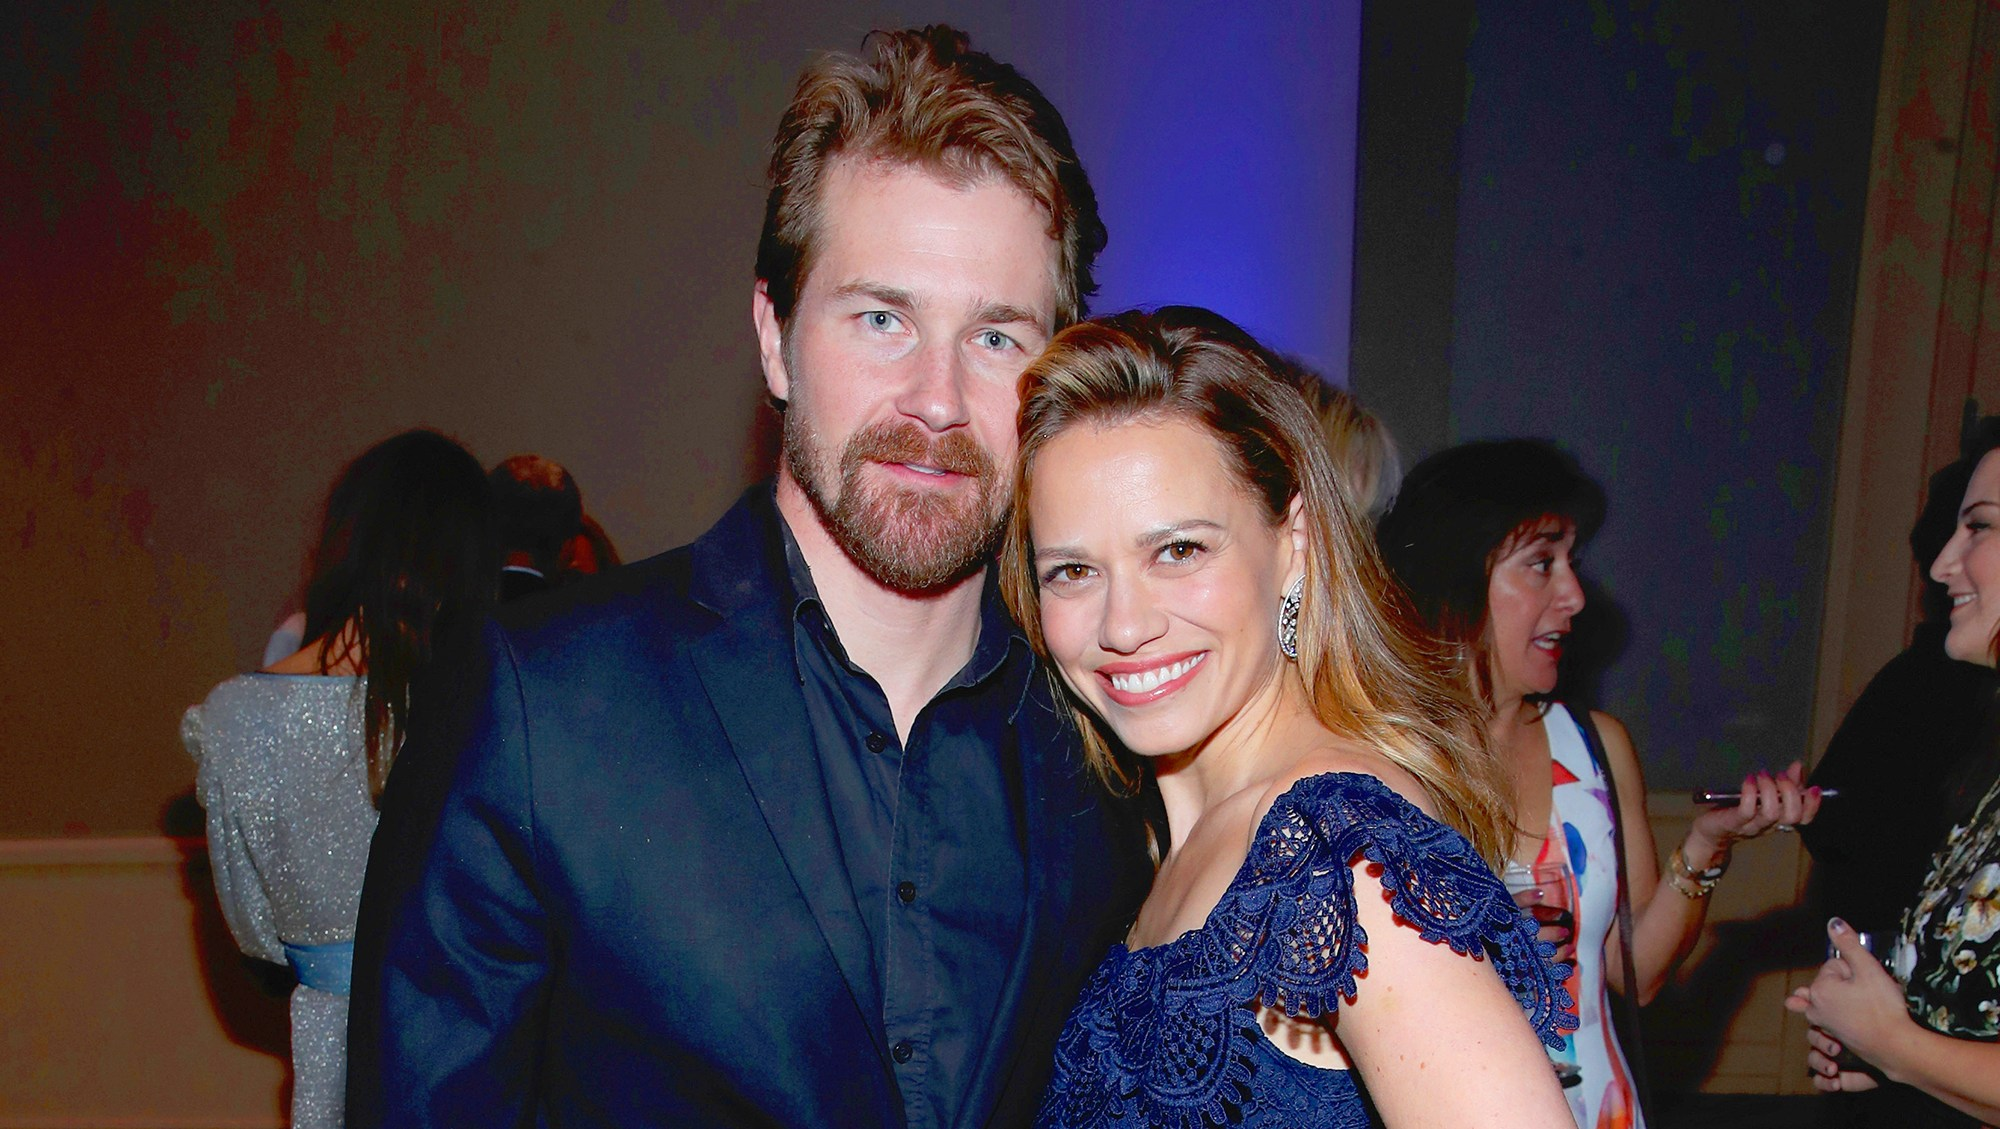 Josh Kelly and Bethany Joy Lenz